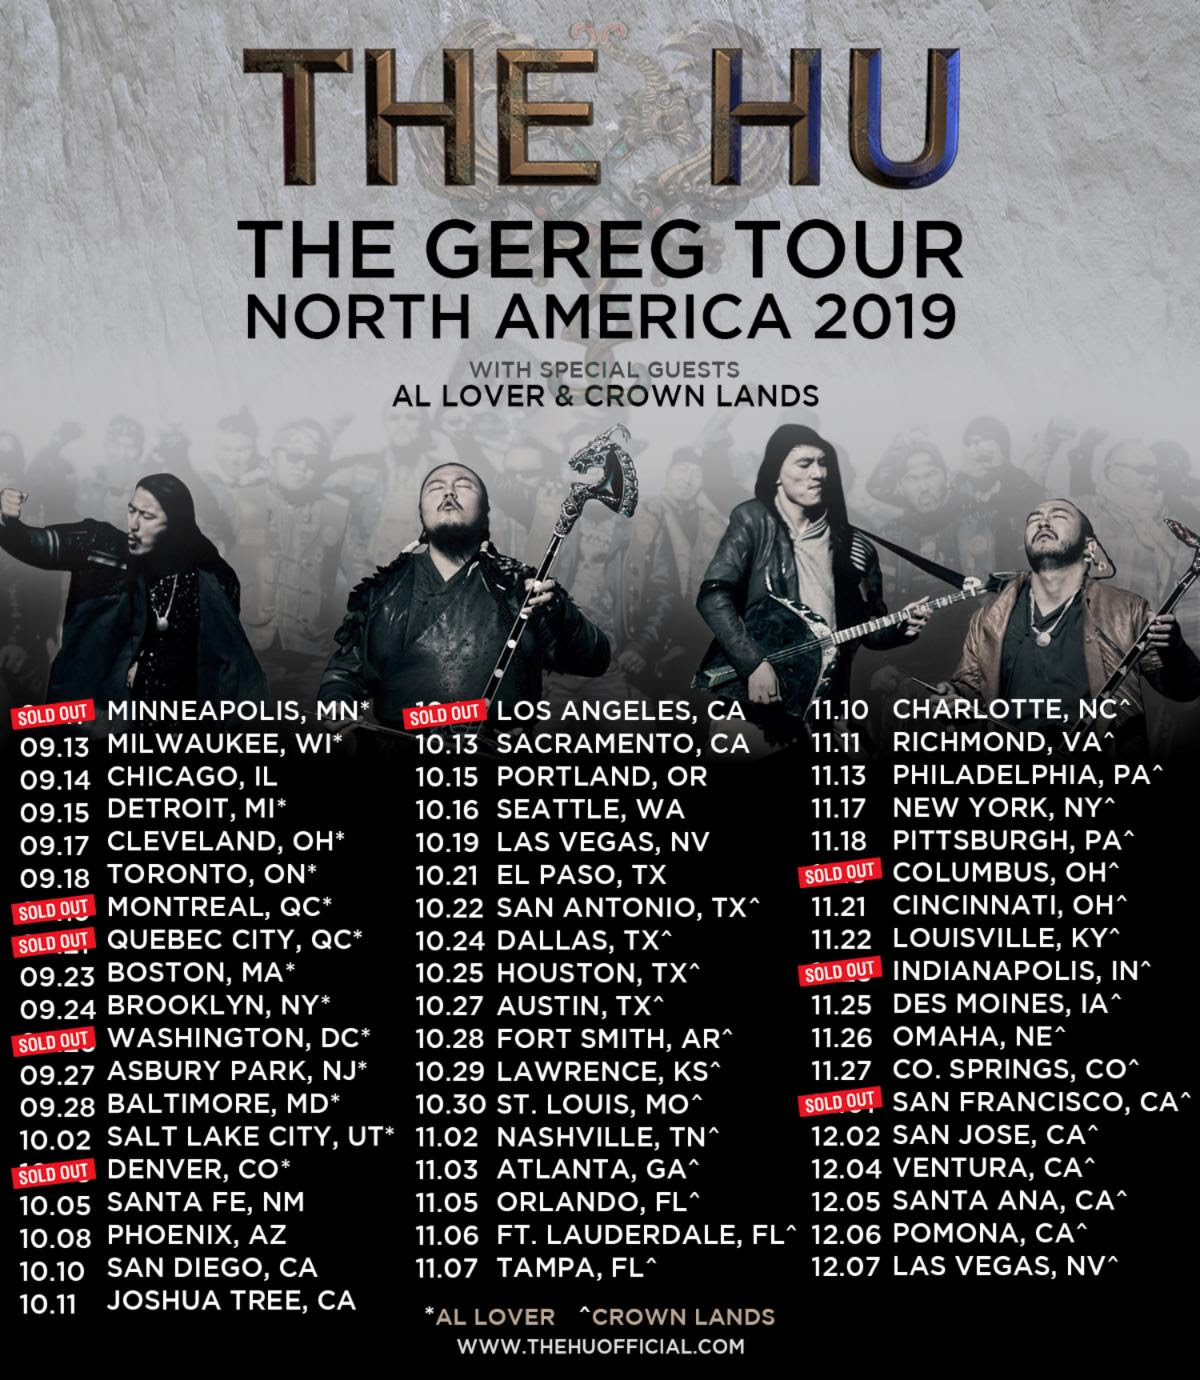 """THE HU  triumphantly kicked off their debut three-month headlining tour across  North America  with the first of  nine sold-out shows  last night in  Minneapolis , thrilling audiences with their one-of-a-kind style of ' hunnu rock' --a combination of American heavy rock played with traditional Mongolian instruments and guttural throat singing that is featured on their debut album,  THE GEREG , out tomorrow , Friday, September 13  via  Eleven Seven Music.    The  Mongolian-based rock sensation  will continue to make their mark as newly appointed  Cultural Envoy of Mongolia  representatives as they perform at several of the fall's biggest music festivals- Riot Fest (Chicago), Aftershock Festival (Sacramento)  and  Las Rageous (Las Vegas )-alongside  sold-out  dates in major cities including:  Montreal, Quebec City, Washington, D.C., Denver, Los Angeles, Columbus, Indianapolis  and  San Francisco .   THE HU  have achieved viral online success with their captivating and cinematic videos for the album's singles """" Wolf Totem, """" """" Yuve Yuve Yu """" and """" The Great Chinggis Khaan""""  which combined have logged over  40 million  views to date and were filmed at historic locations in their home country.    Pre-order THE GEREG here:   https://thehu.ffm.to/thegereg"""